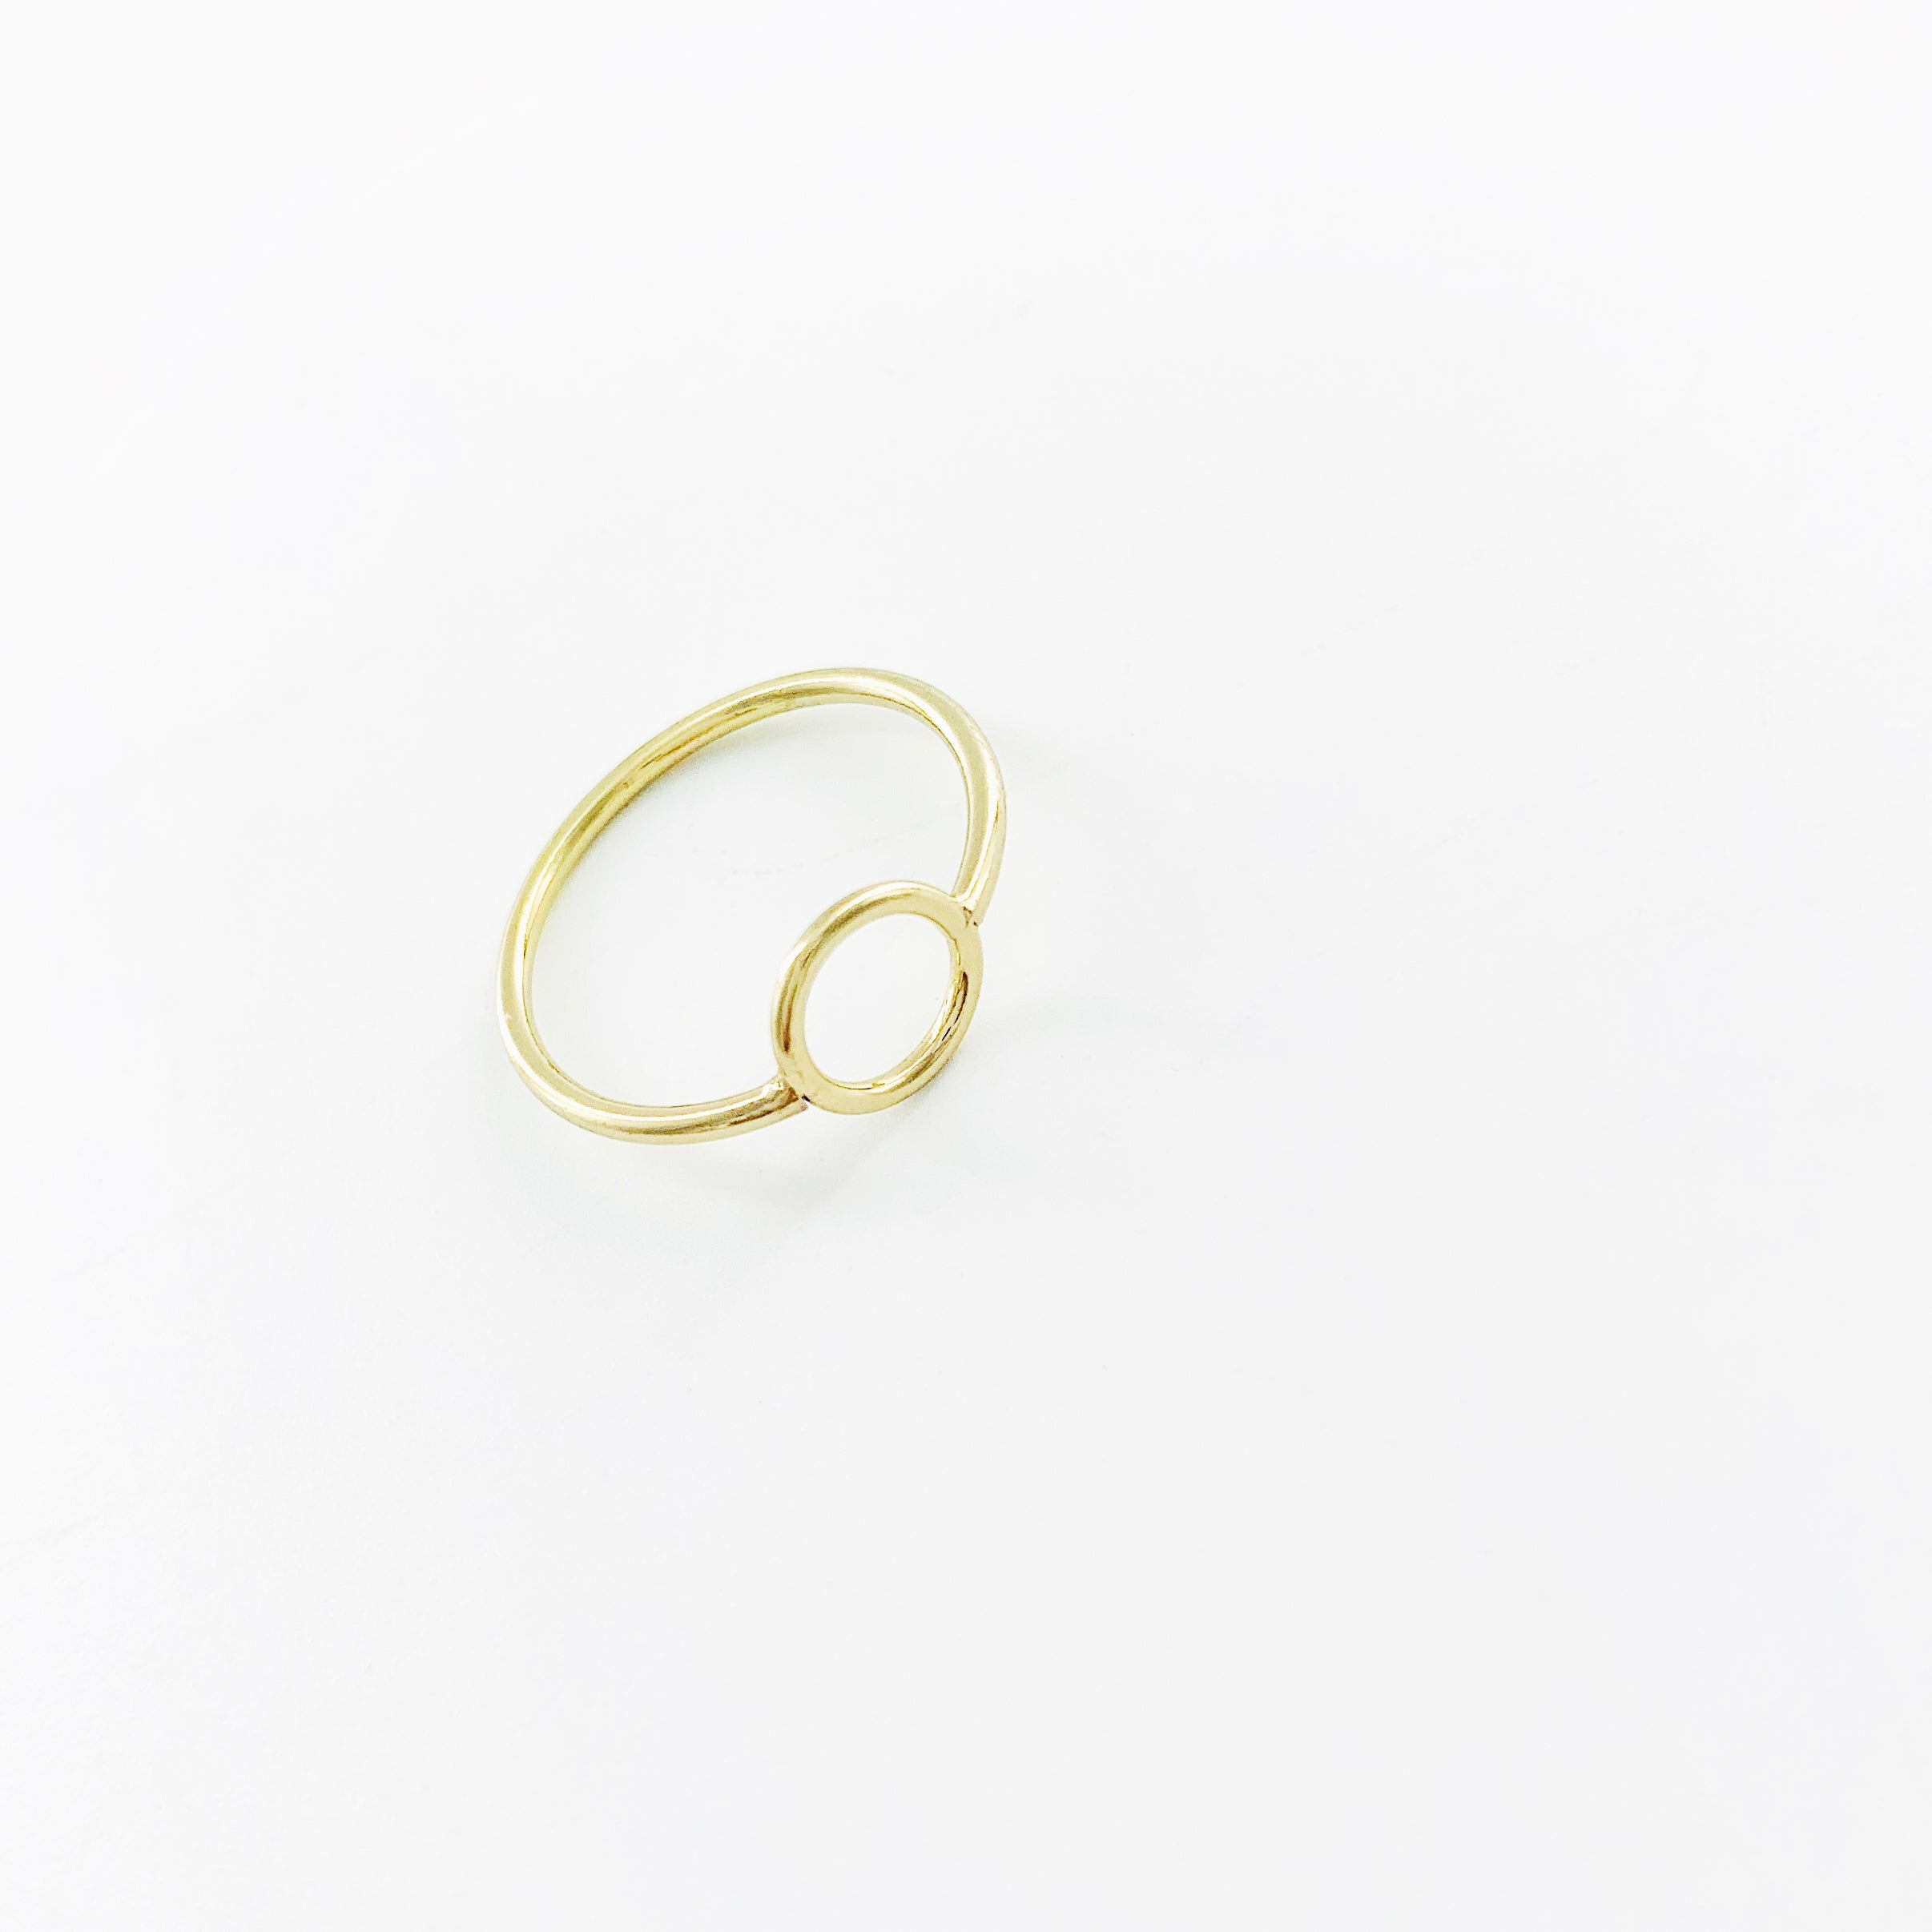 Thin gold ring with hollow circle design